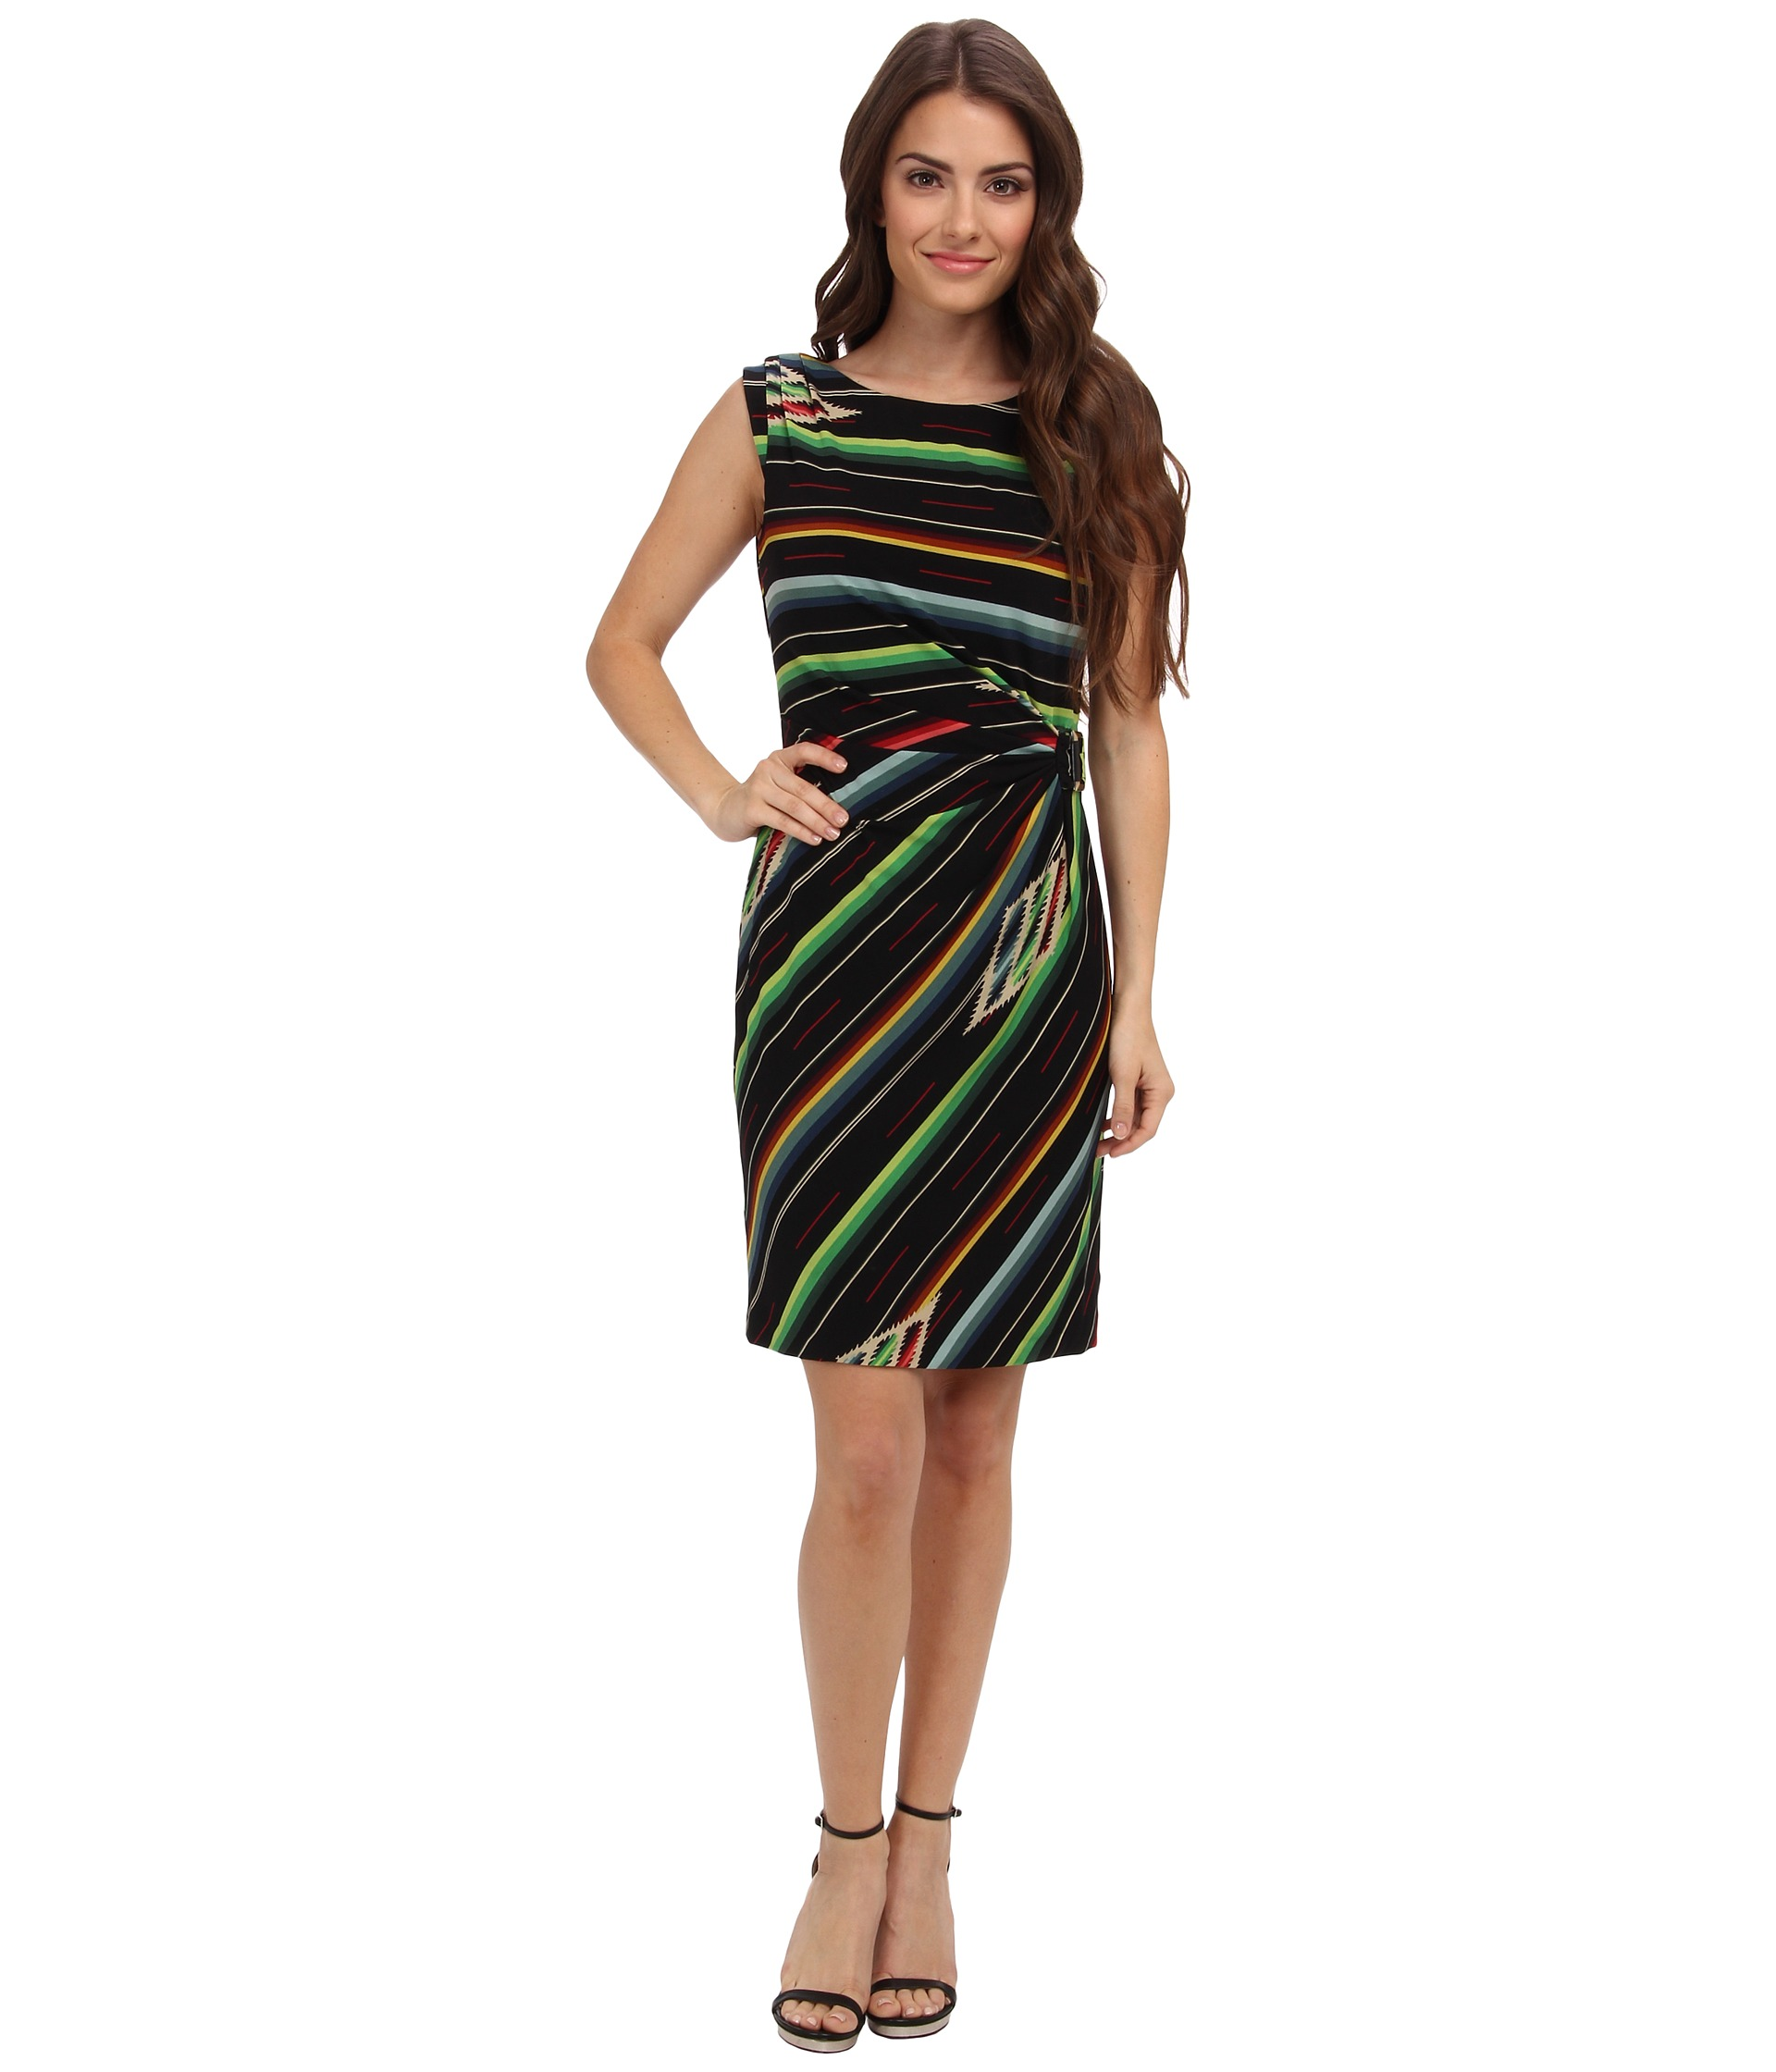 Tahari Dress Picture Collection Dressed Up Girl